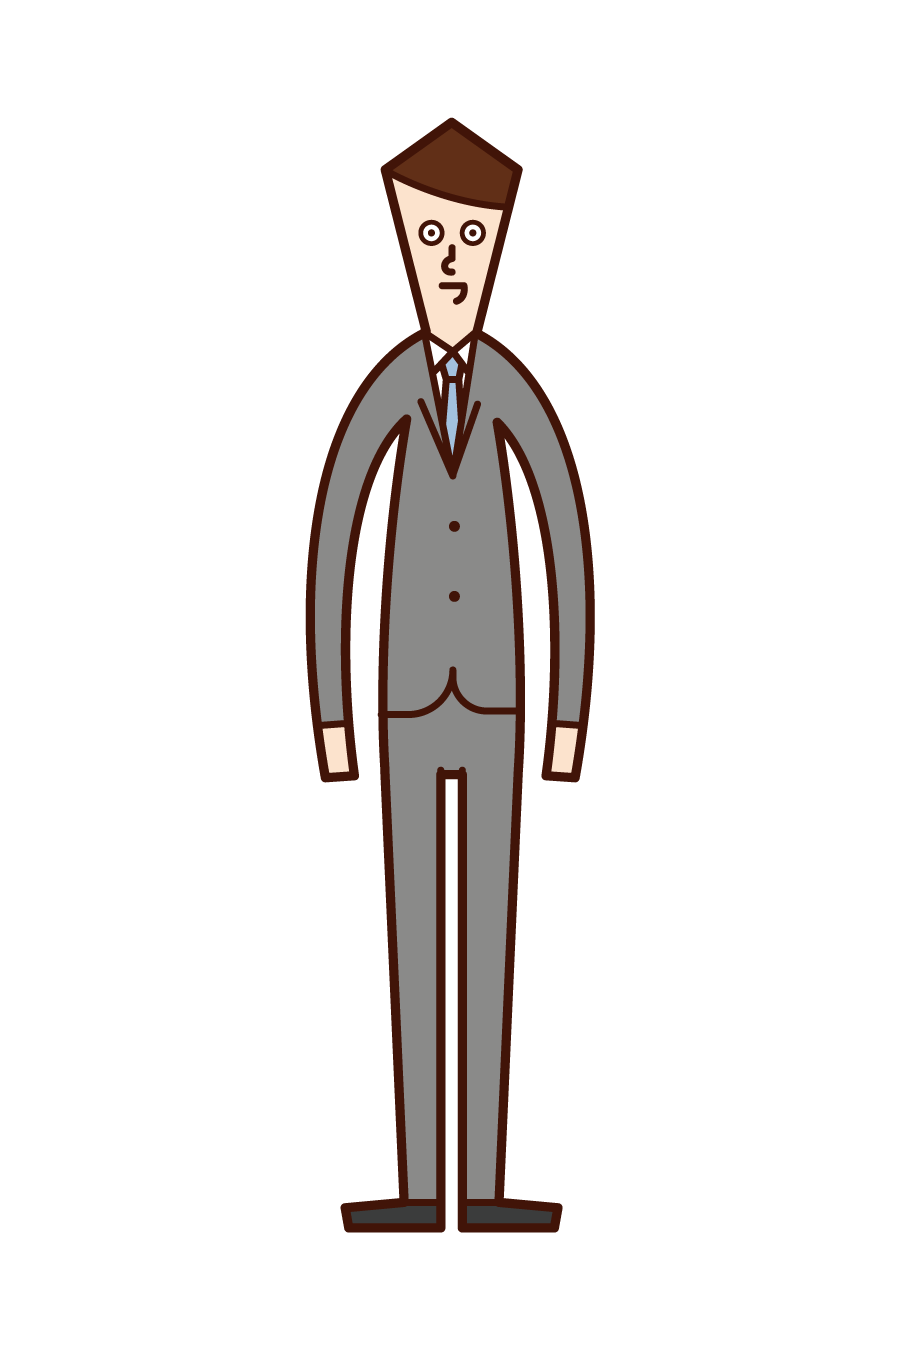 Illustration of a man in a suit